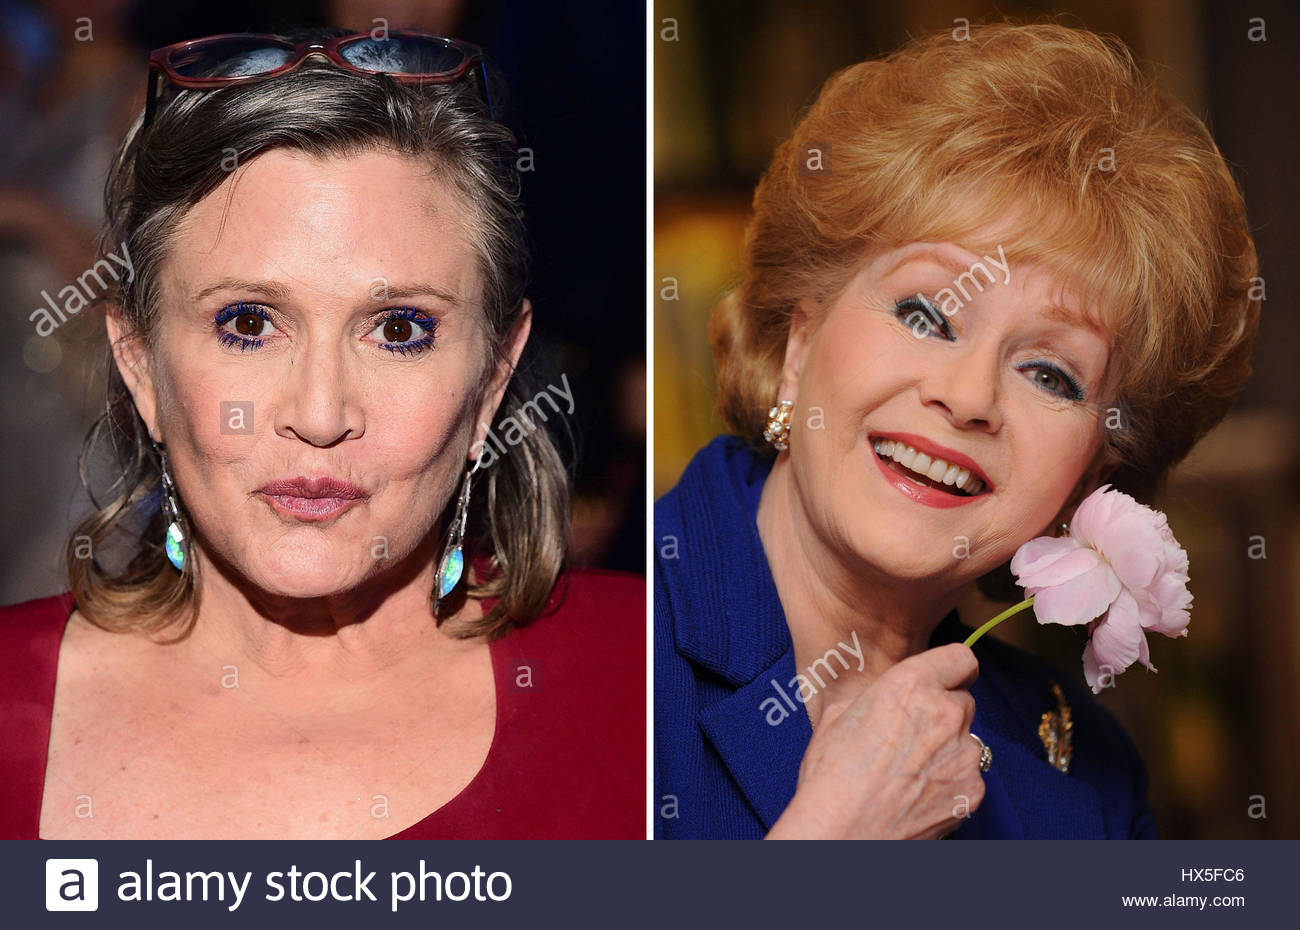 File photos of Carrie Fisher (left) and Debbie Reynolds, who will be remembered at a public memorial in Hollywood - Stock Image